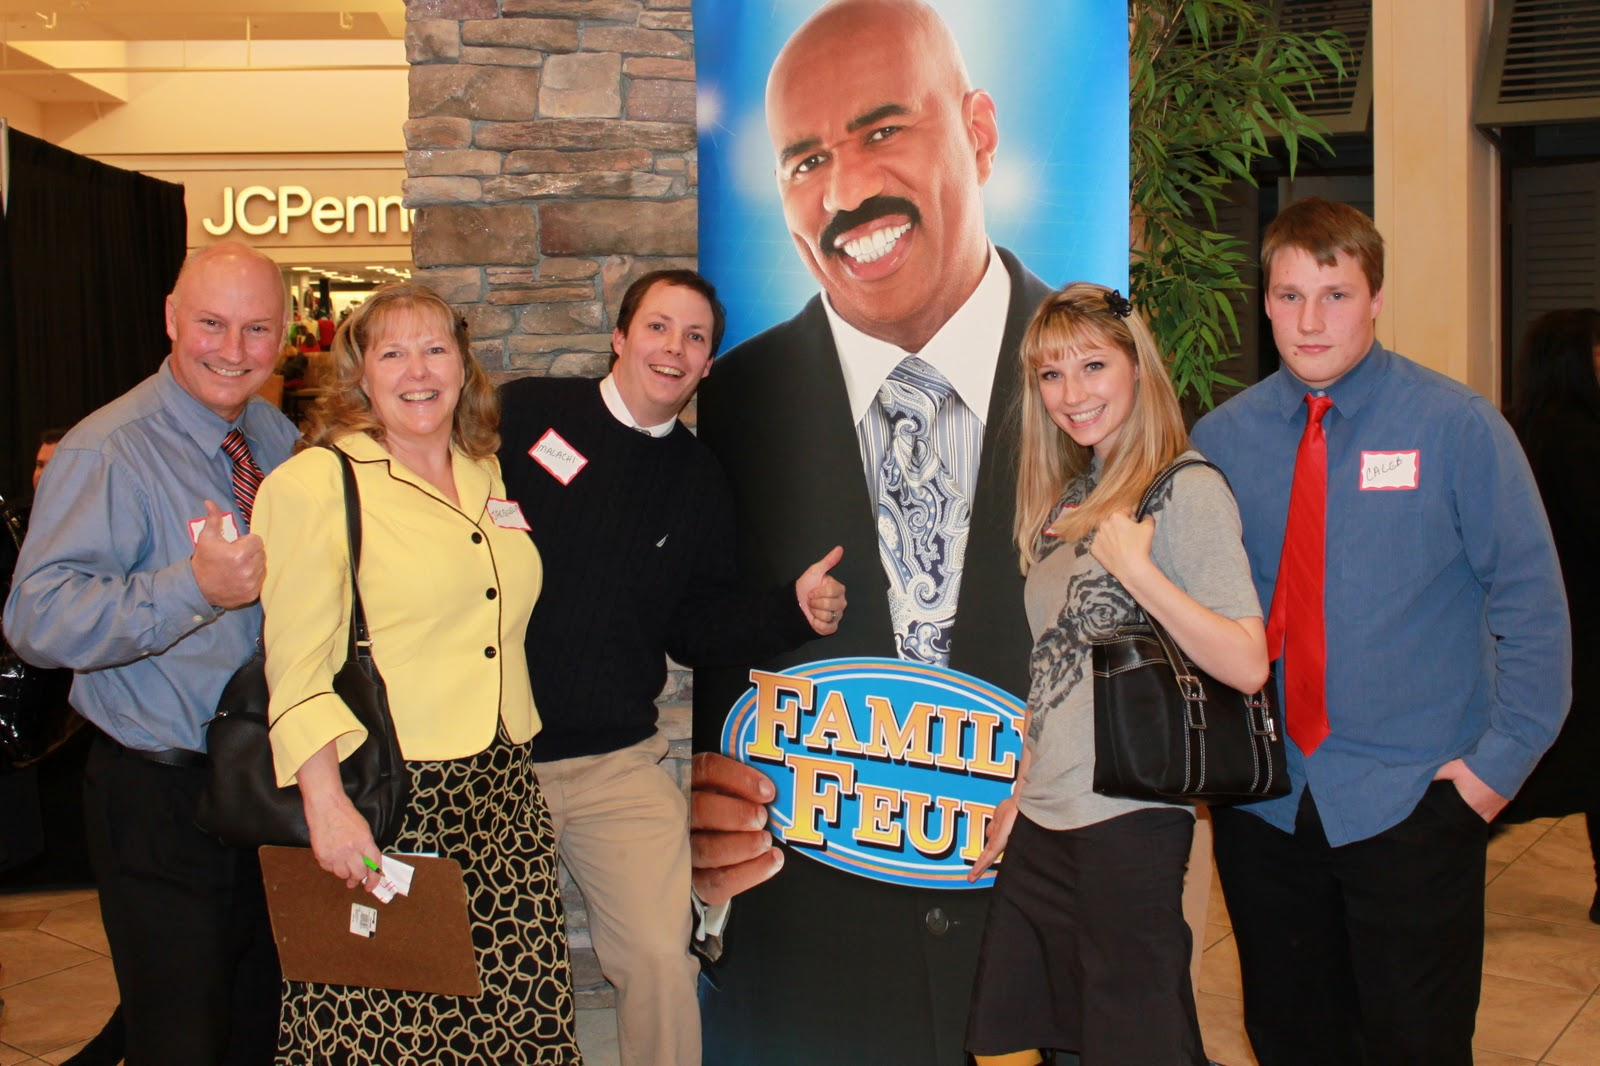 Is family feud filmed in georgia - This Is What It Looked Like The Family On The Left Is In My Mom S Ward And I Wouldn T Be Surprised If They Get On The Show The Casting Director Talked To